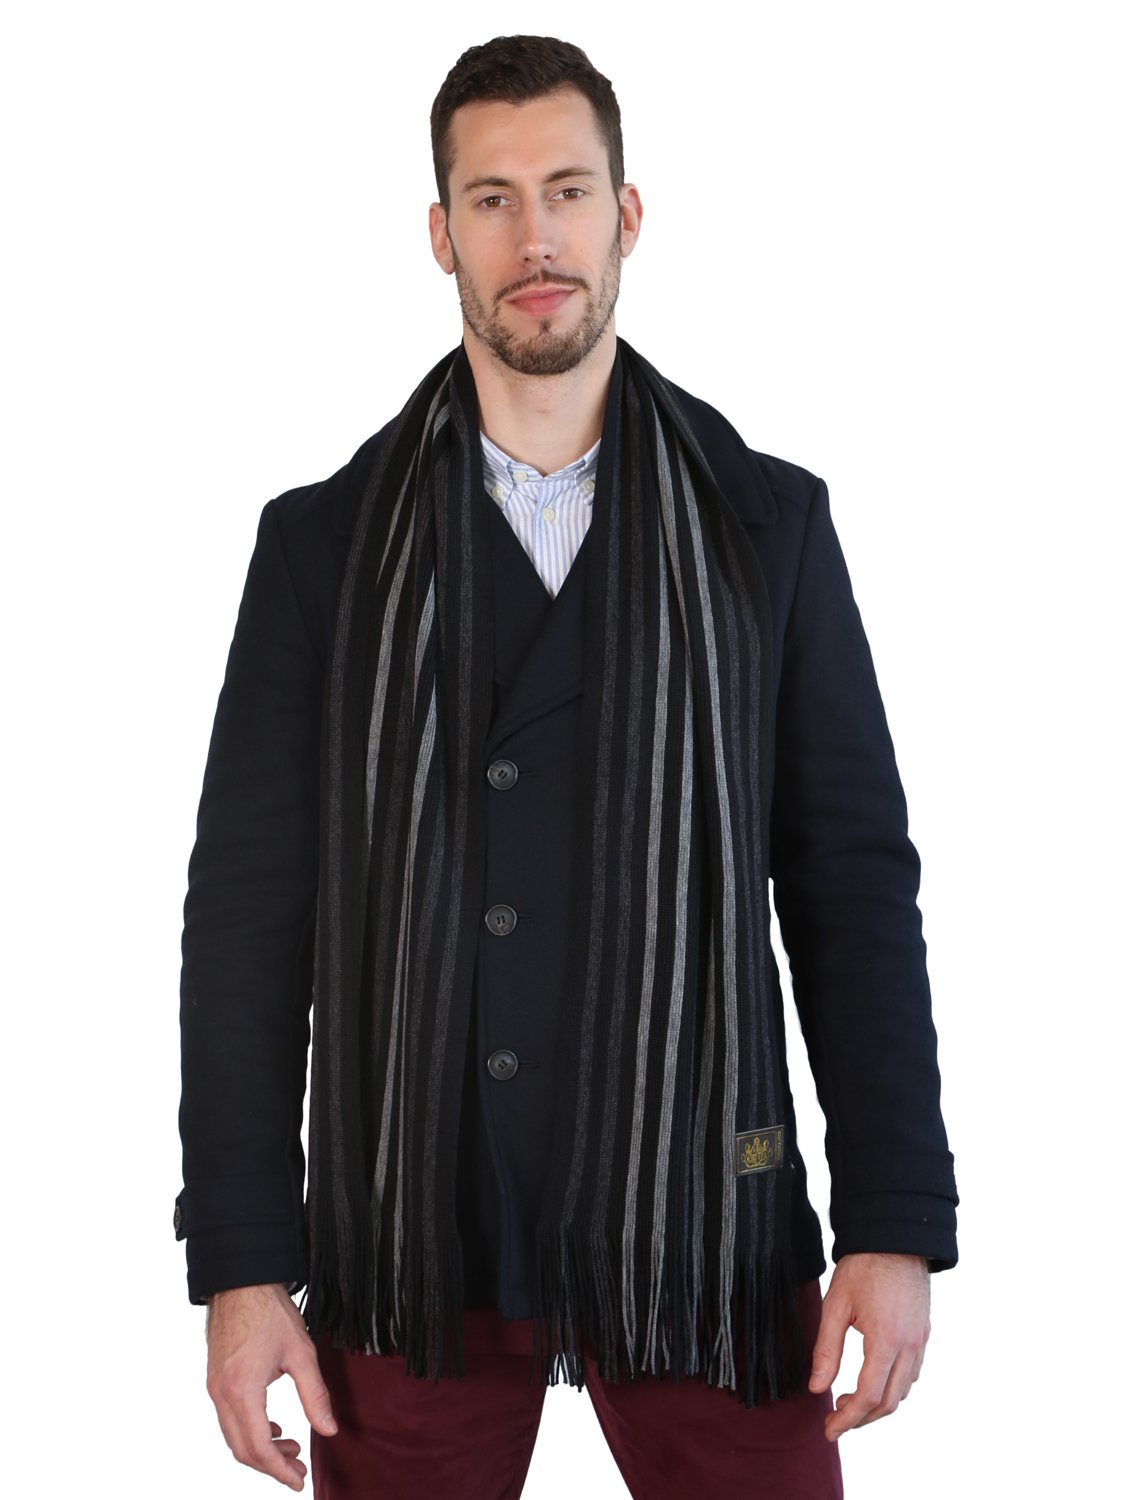 Rio Terra Men's Knitted Scarf, Designer Scarves for Winter Fall Fashion, Silver & Grey by Rio Terra (Image #5)